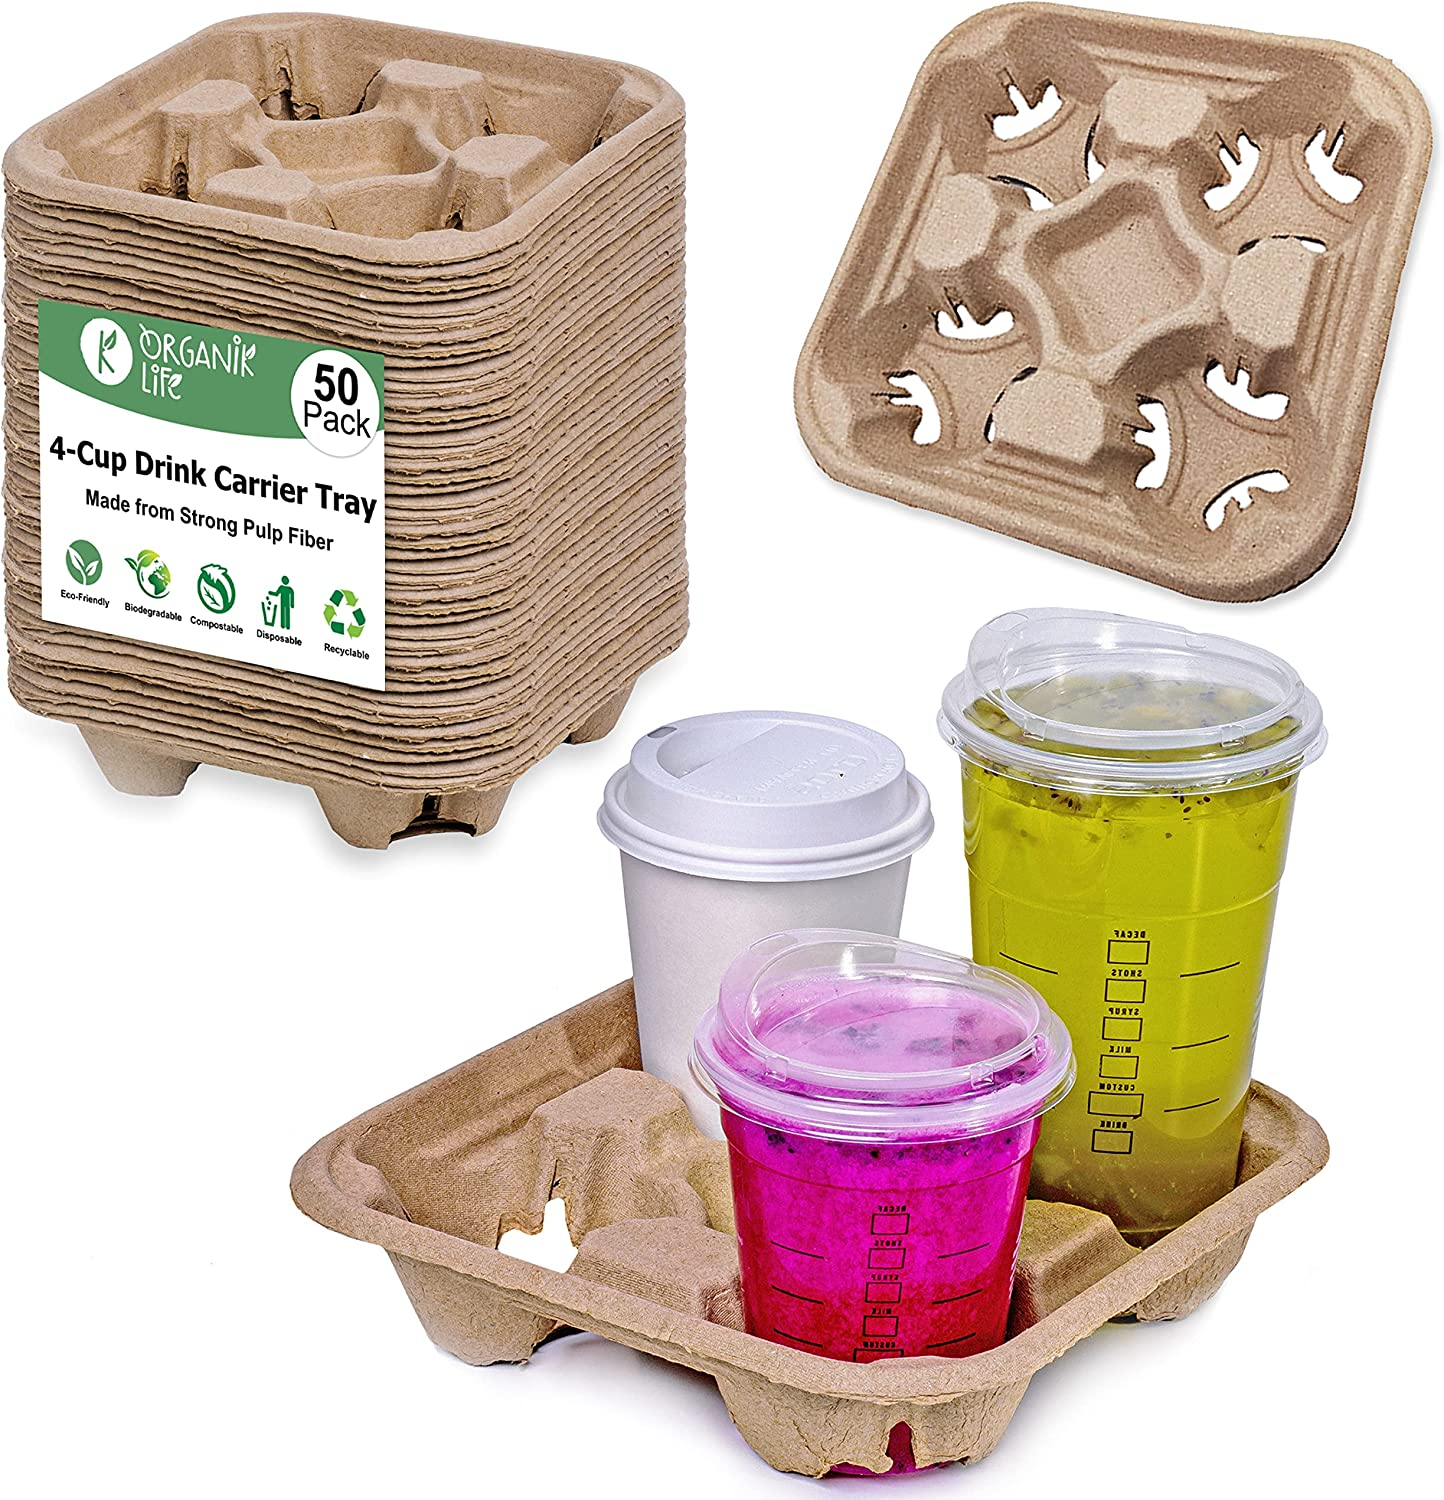 4 Cup Carrier Tray (50-Pack), No-Spill, No-Mess Disposable Cup Holder Tray, Biodegradable, Eco-Friendly Drink Carrier for Delivery of Hot or Cold Drinks, Ideal To Go Drink Holder for Car Food Delivery